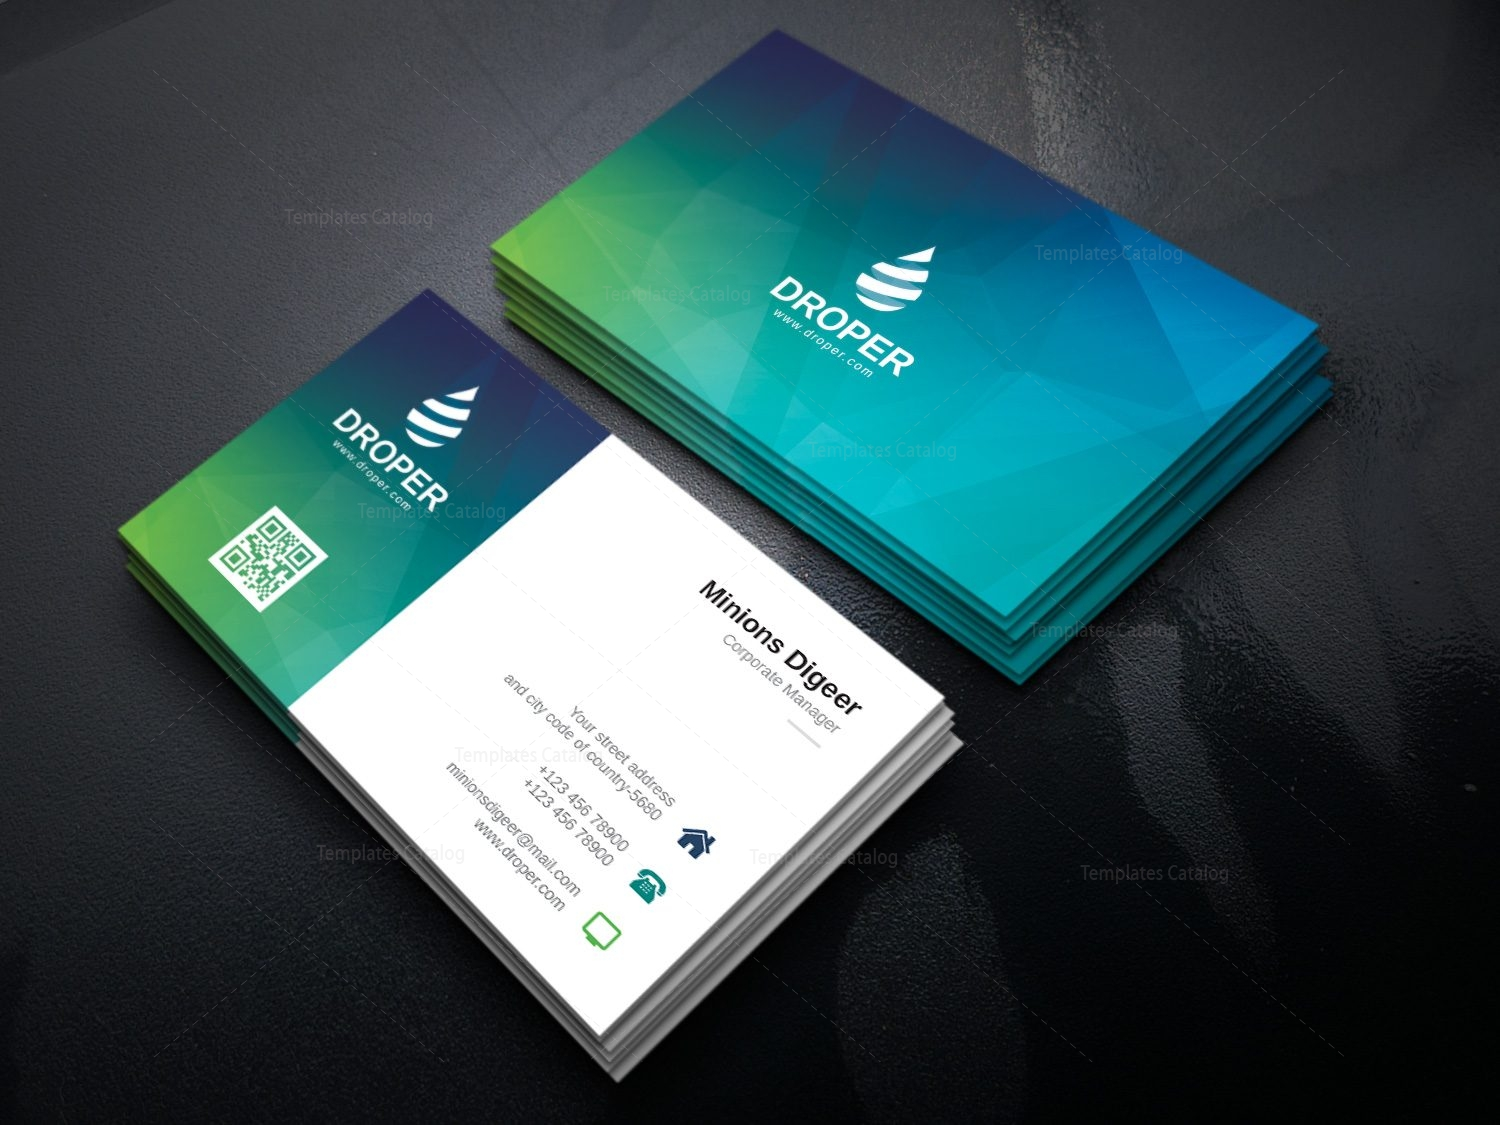 Dolphin modern corporate business card template 000924 template dolphin modern corporate business card template 3 accmission Image collections